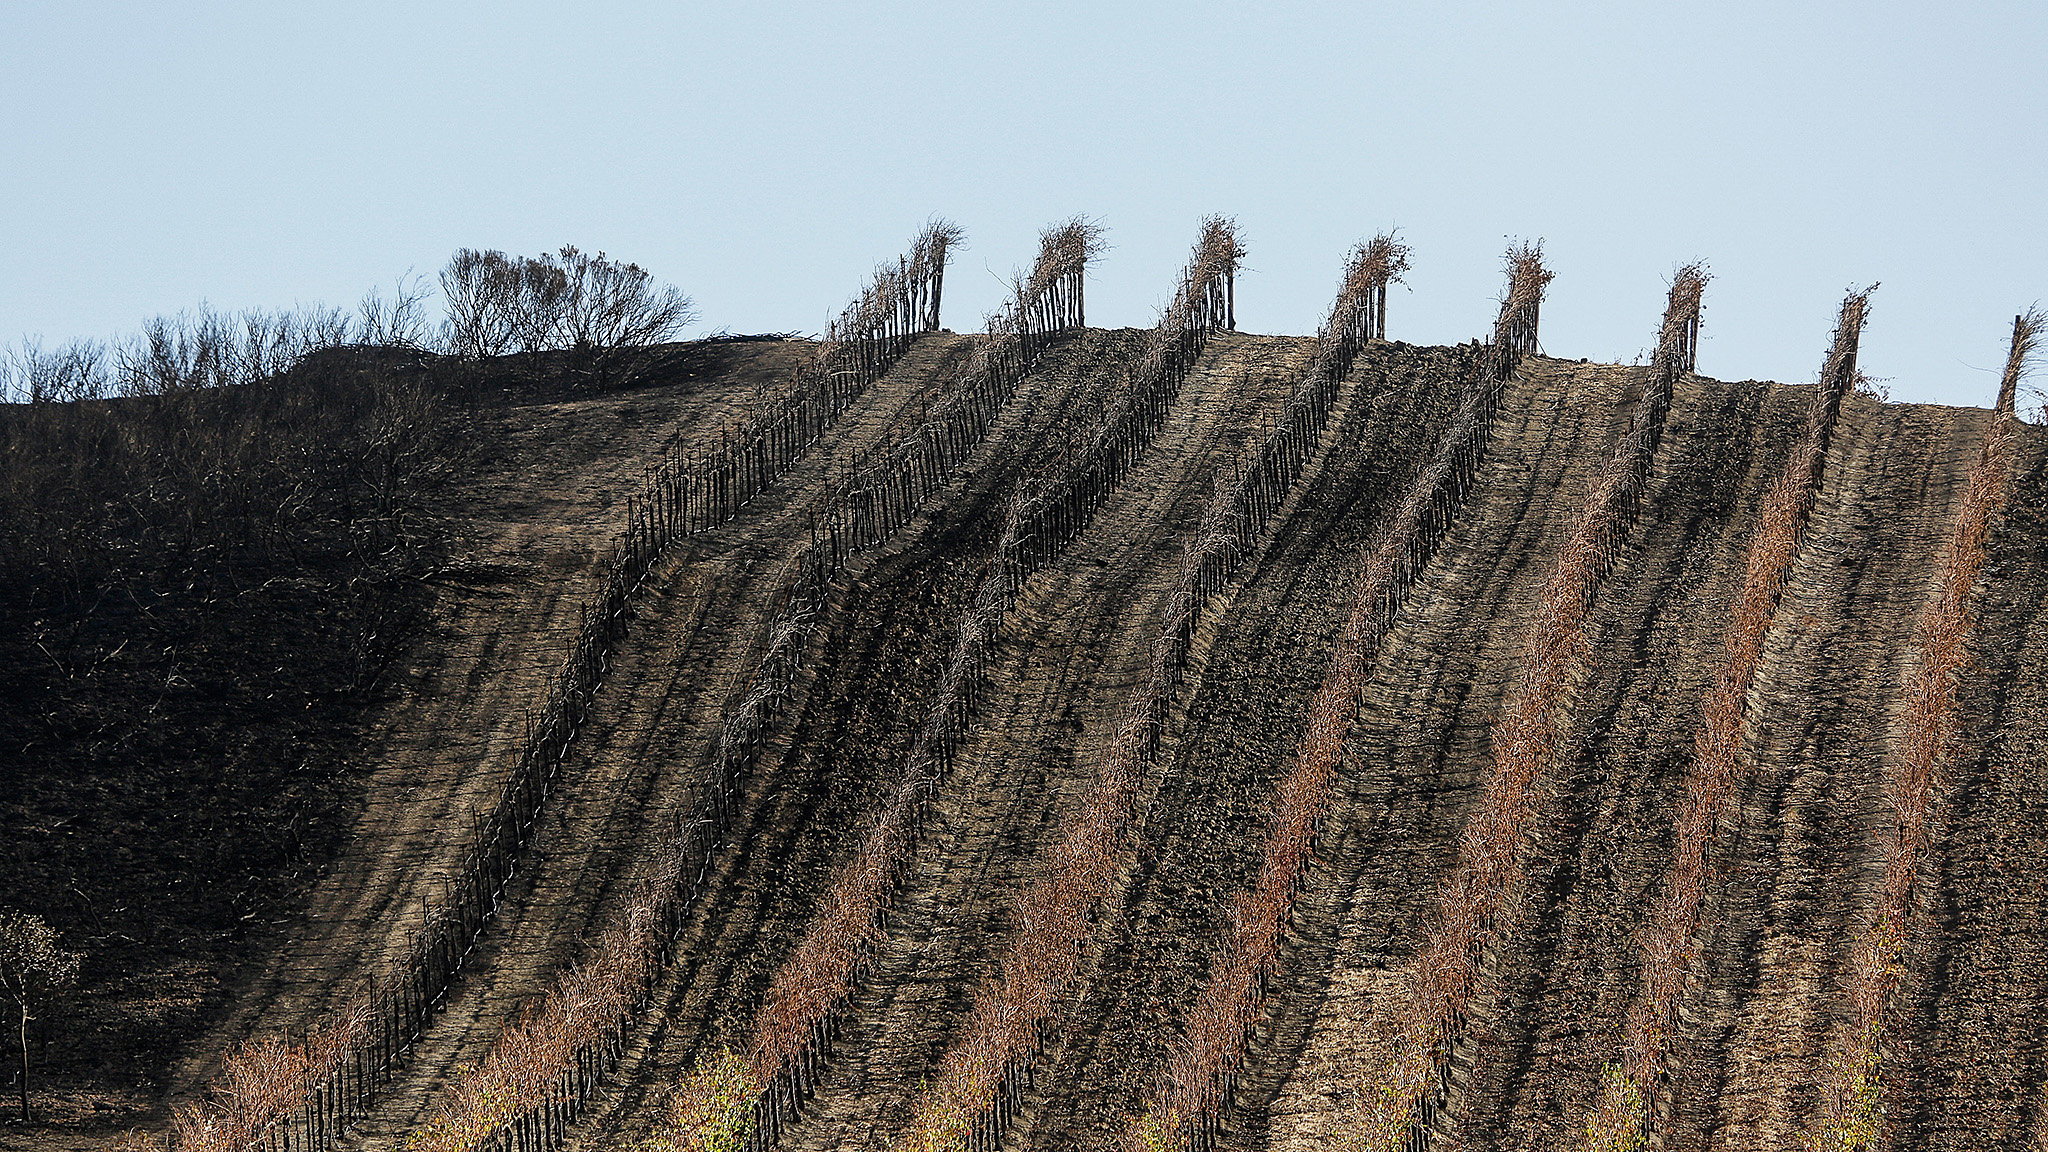 California winemakers face life after fires